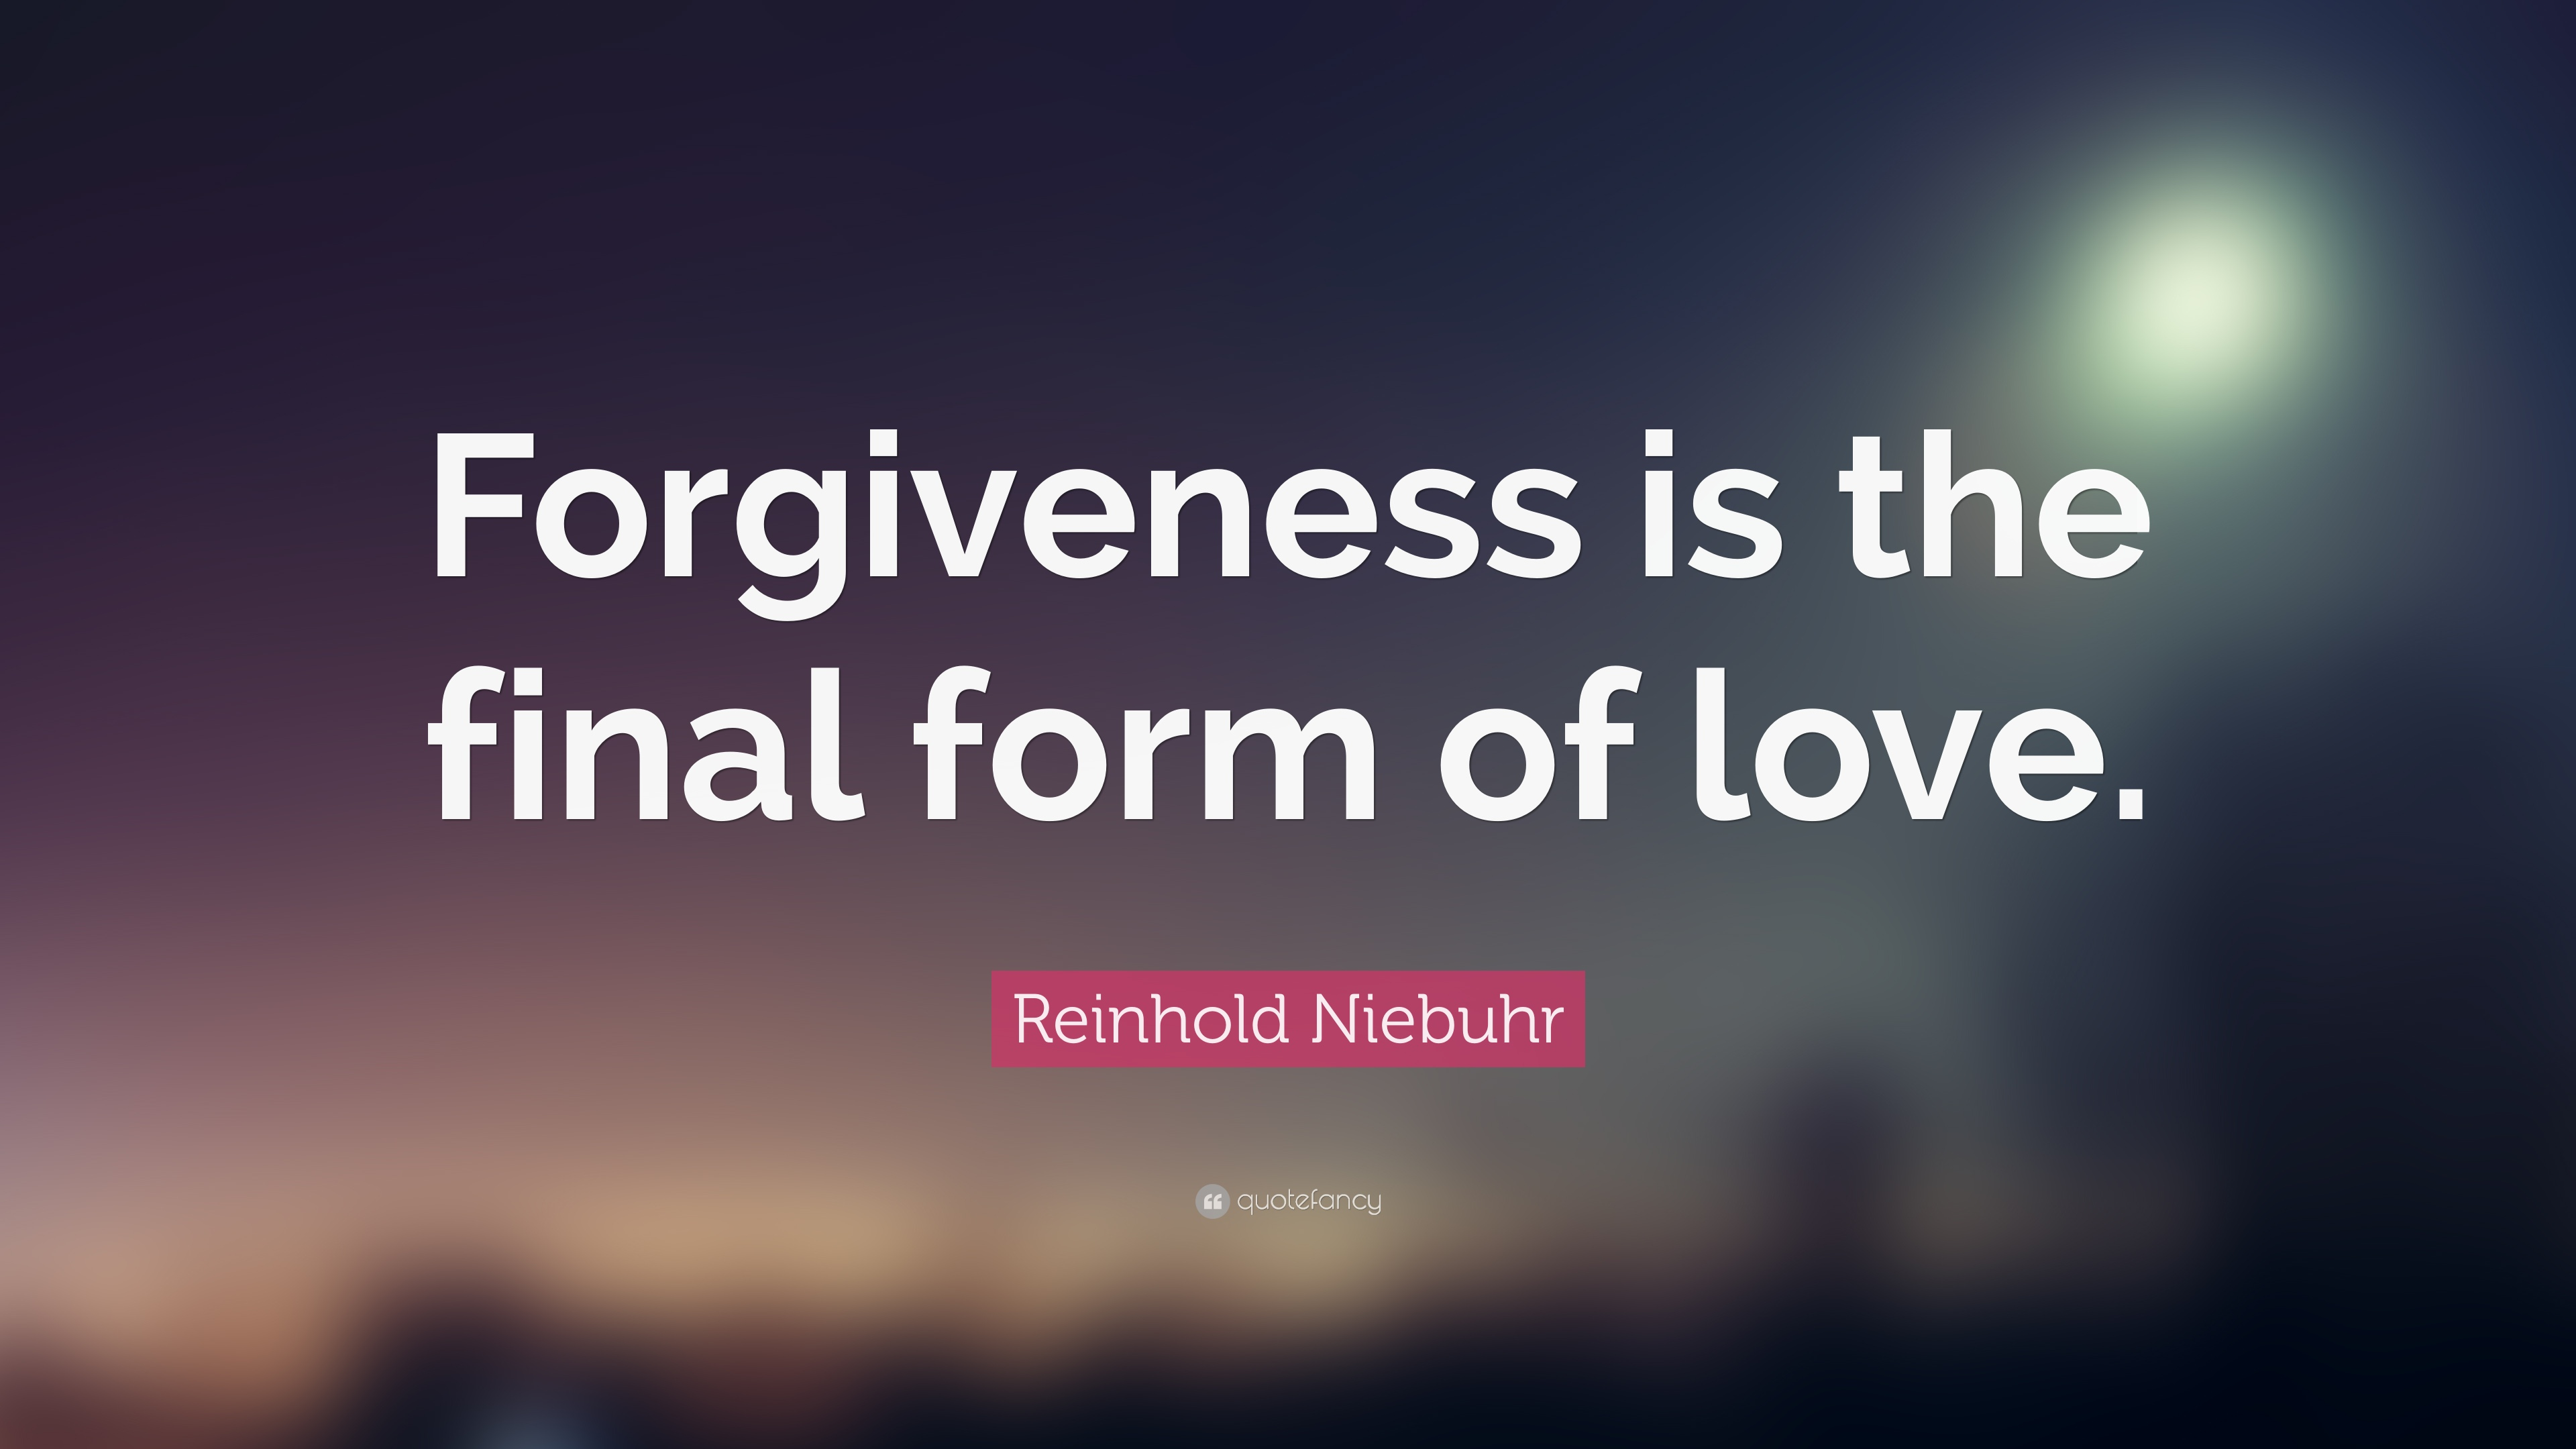 Love Forgiveness Quotes Captivating Forgiveness Quotes 40 Wallpapers  Quotefancy